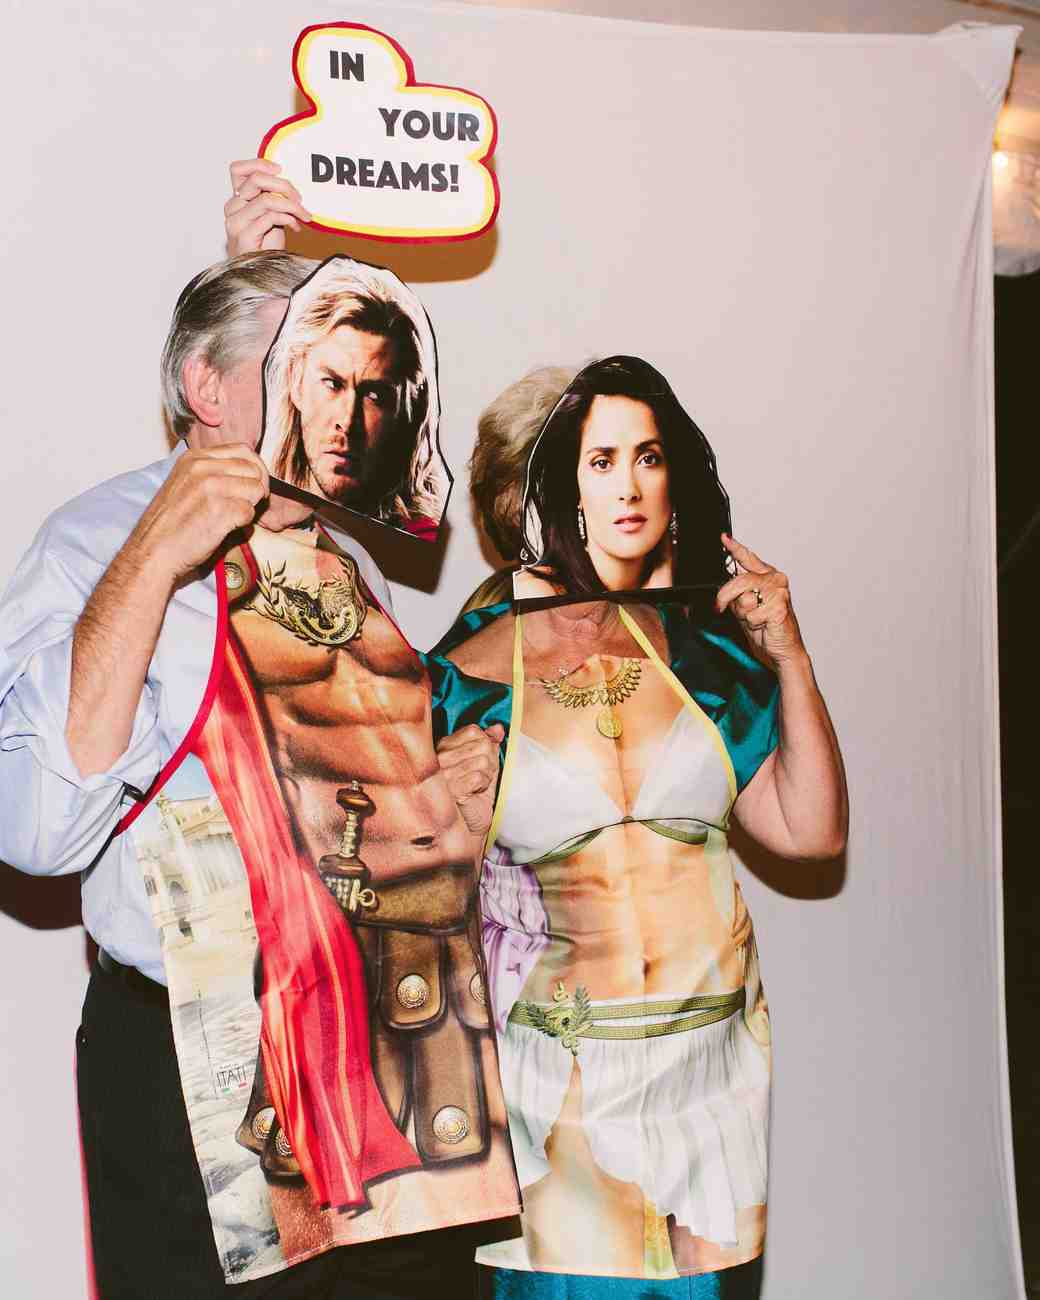 Wedding Guests with Silly Photo Booth Props